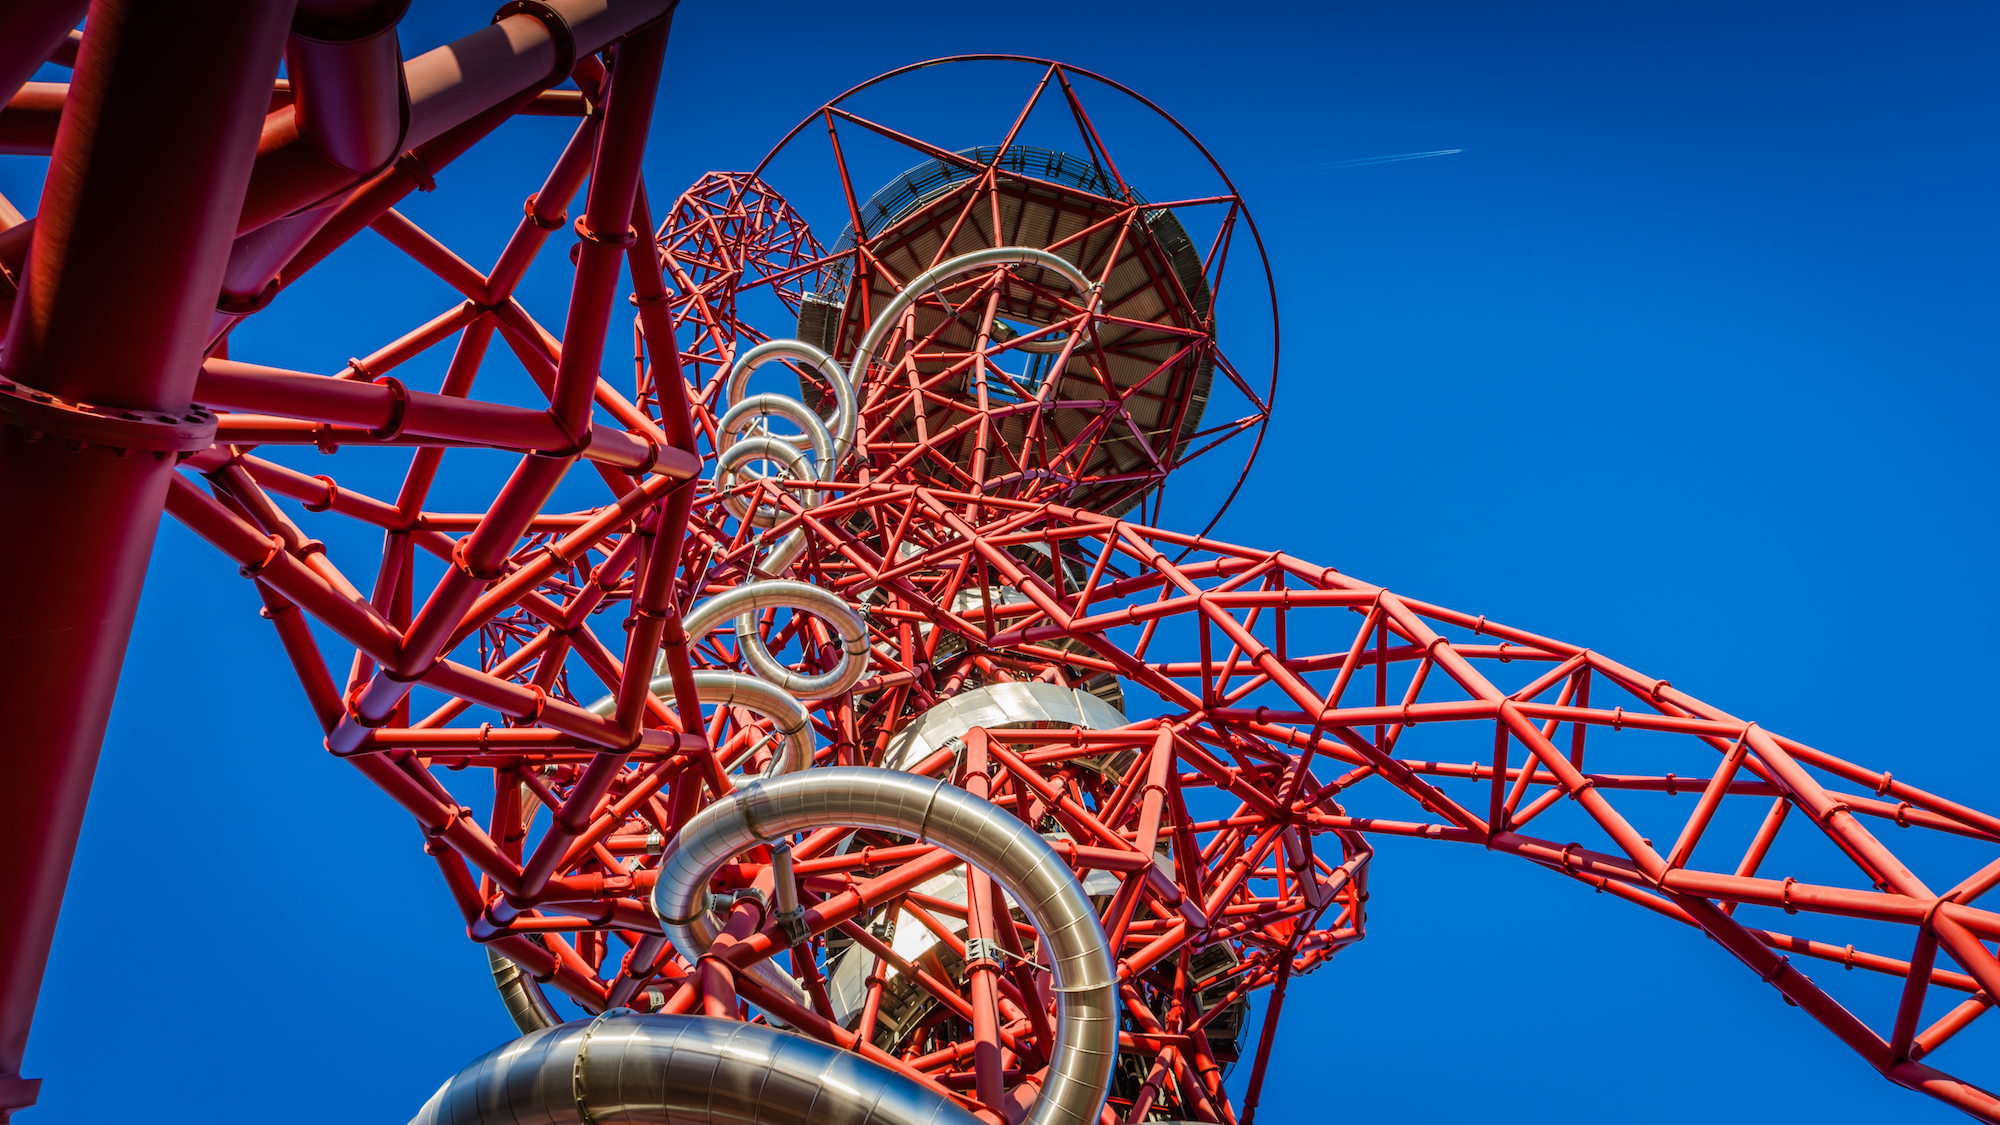 ArcelorMittal Orbit and The Slide, courtesy of Queen Elizabeth Olympic Park